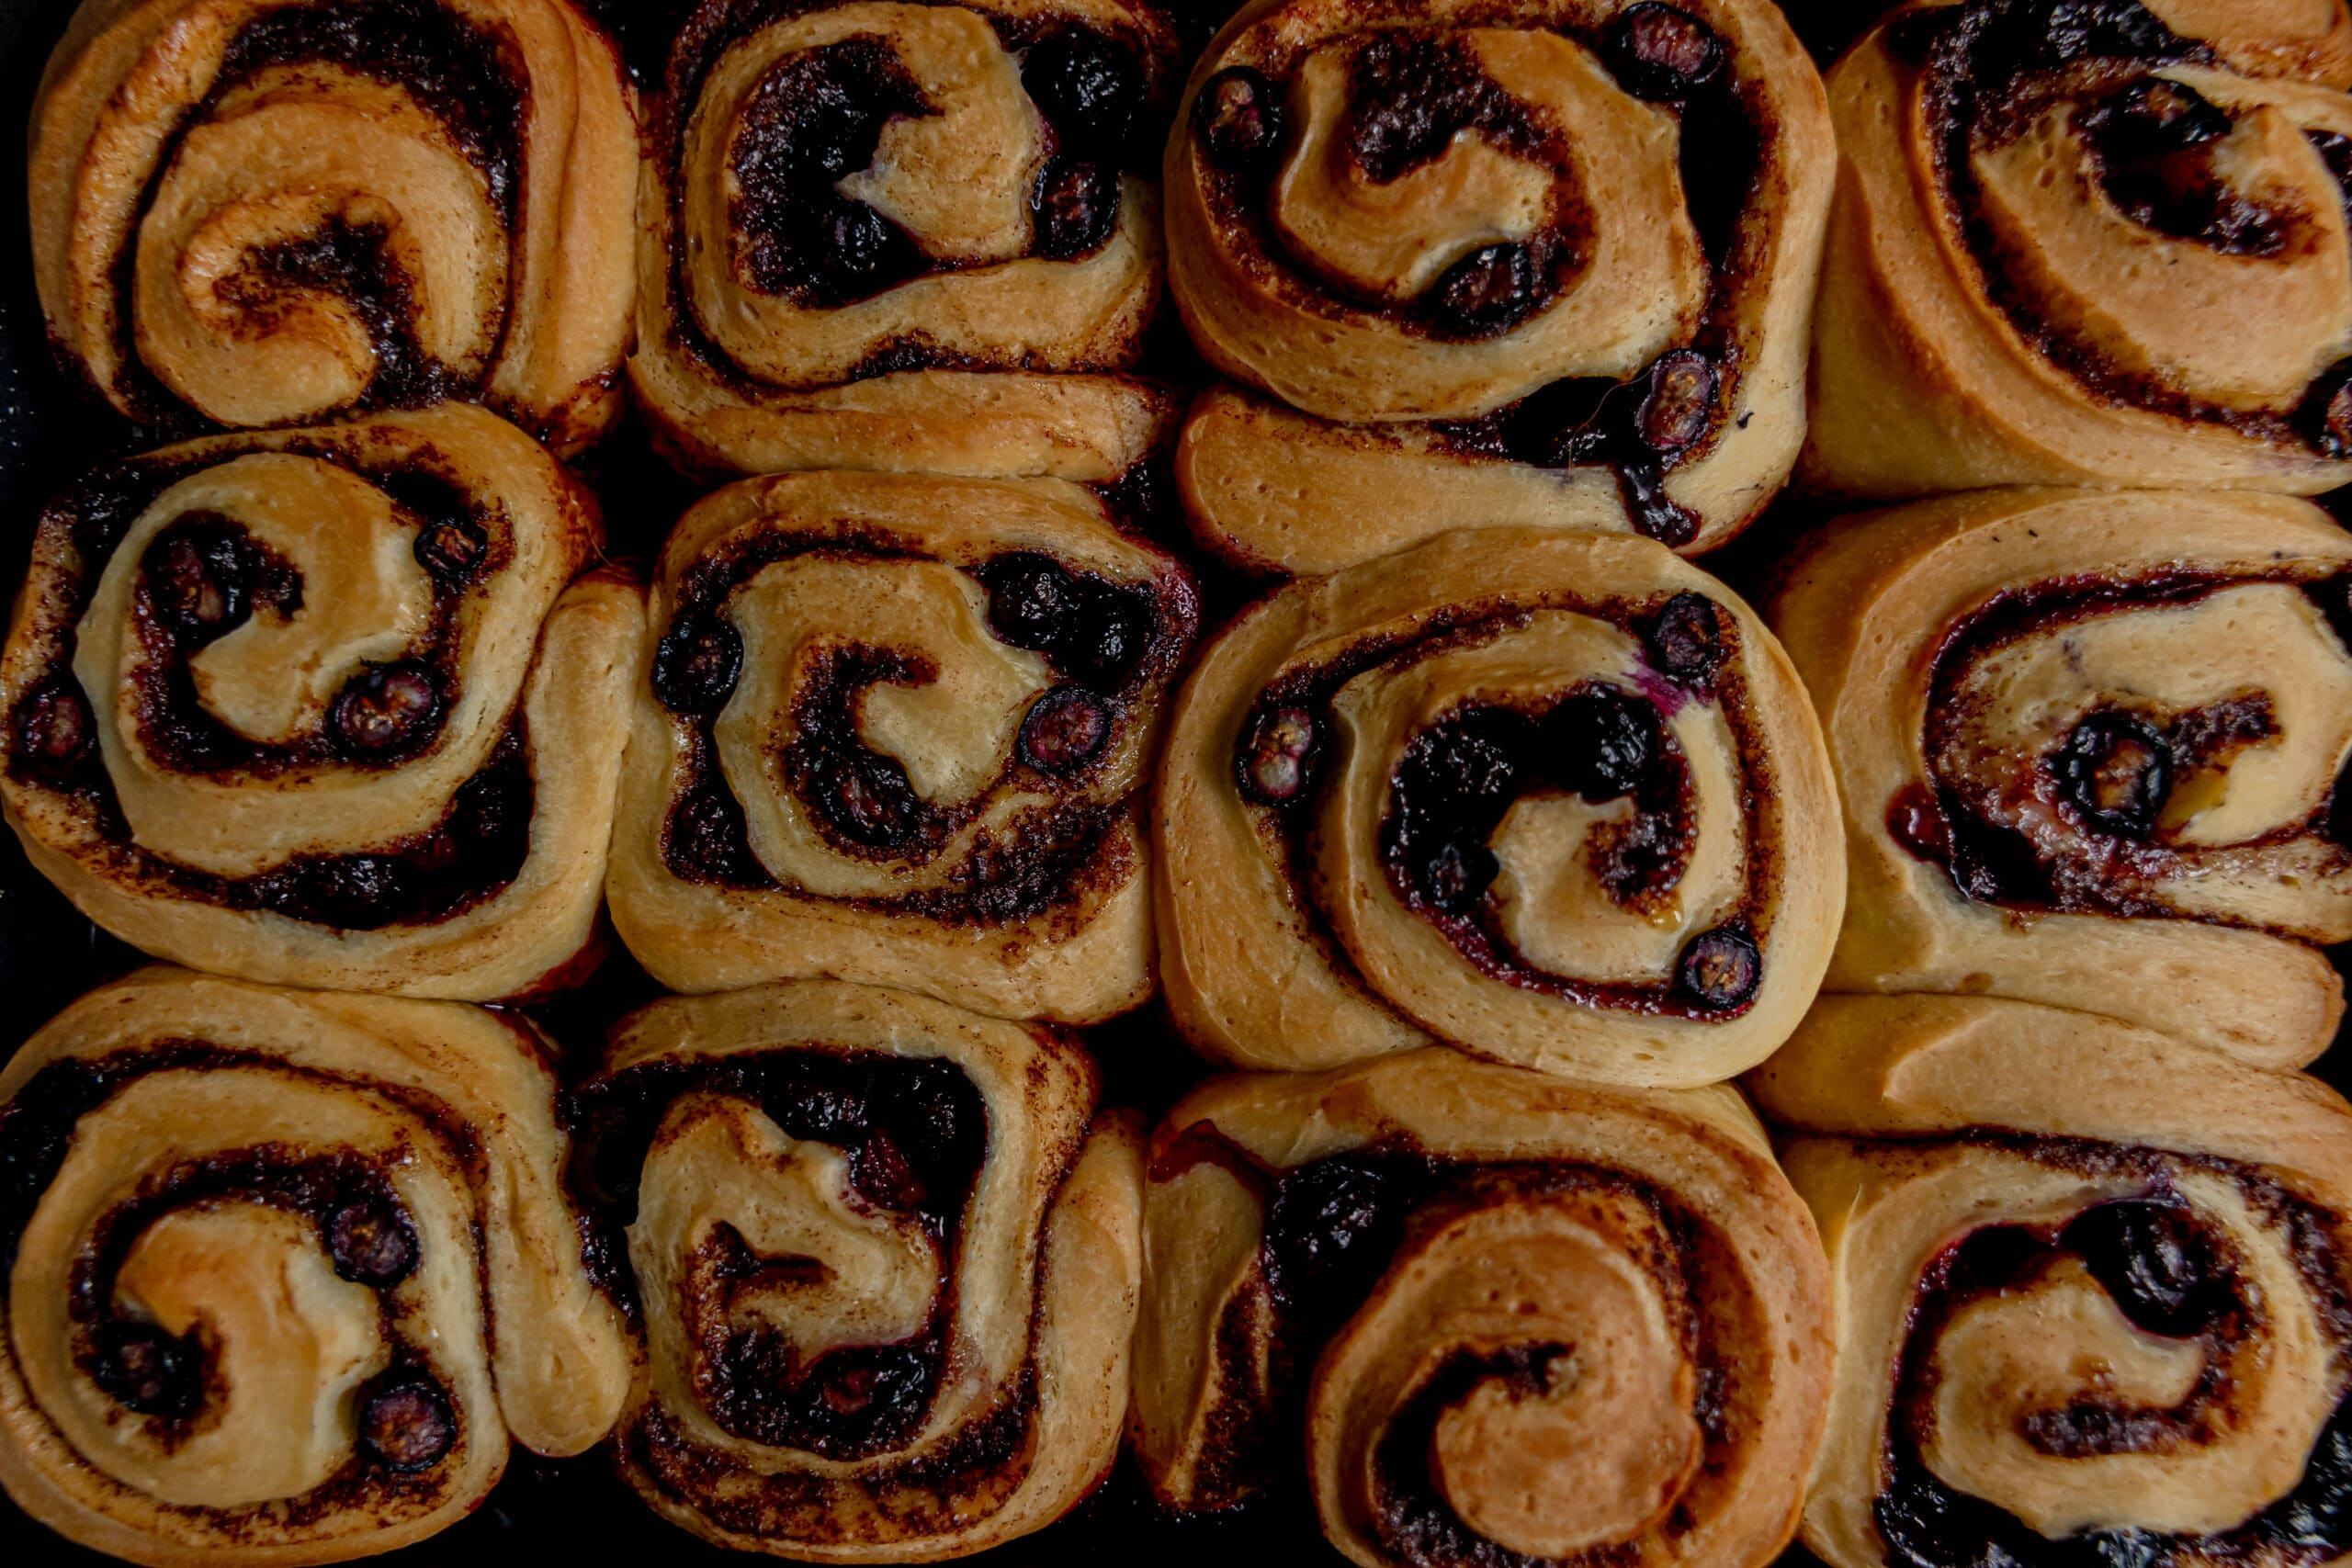 Unfrosted cinnamon buns to show the ideal level of browning